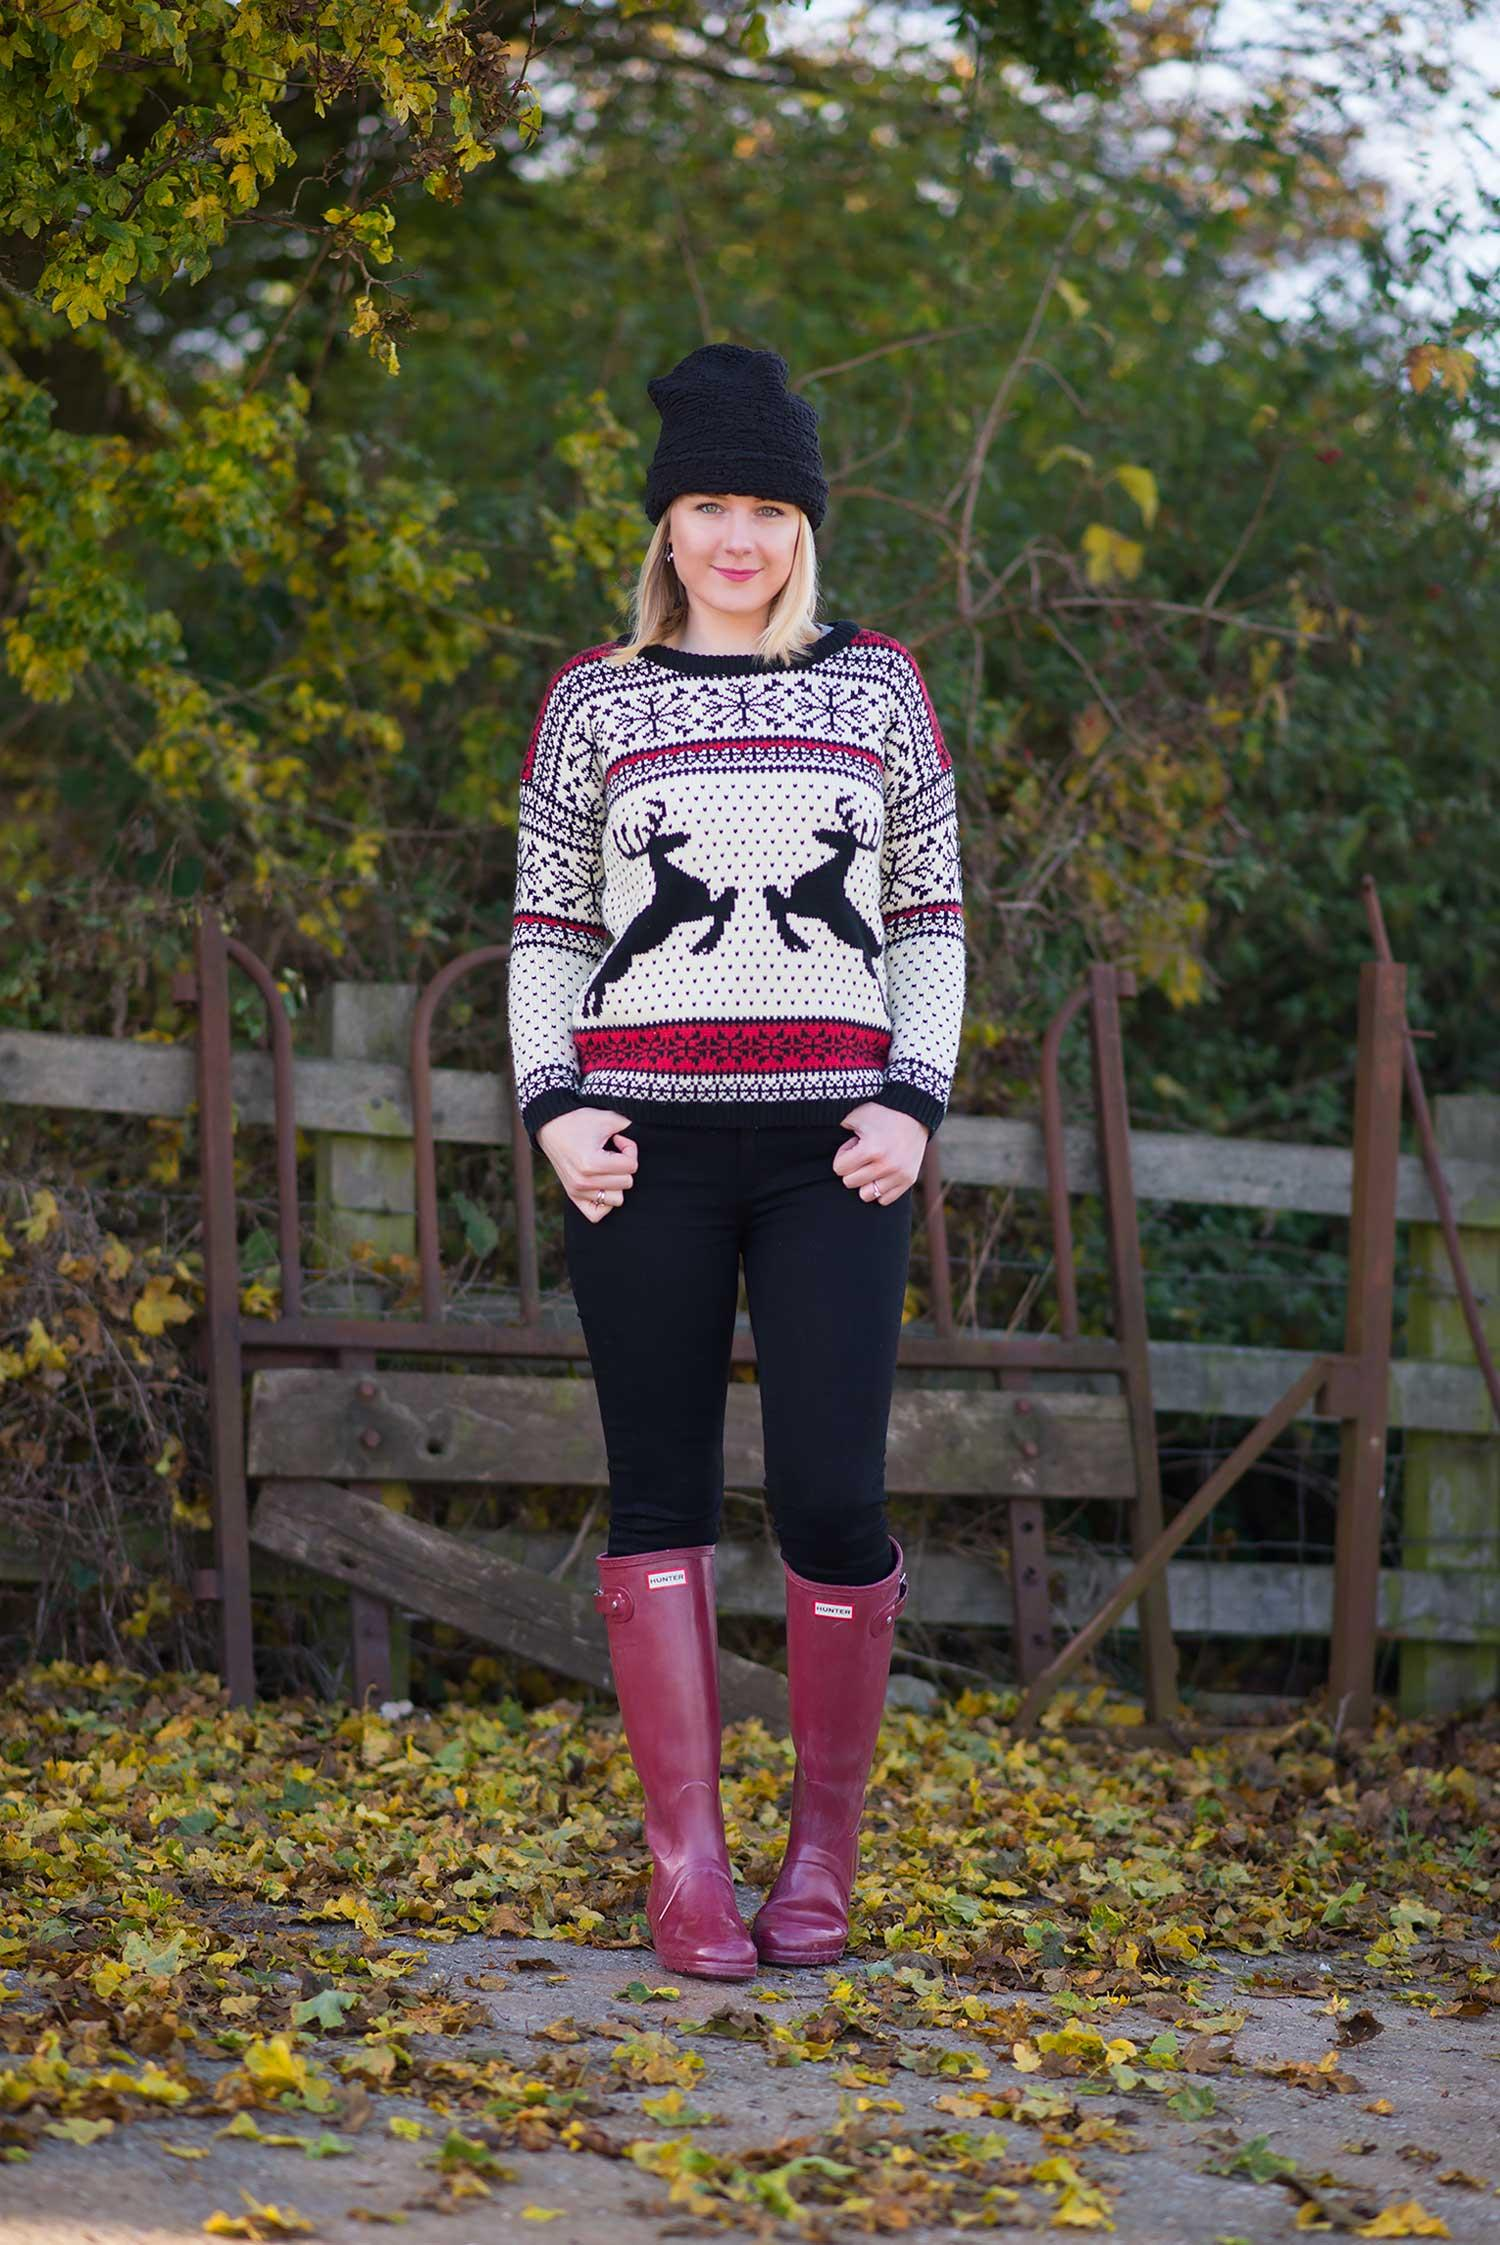 uk-fashionable-girl-woman-in-wellies